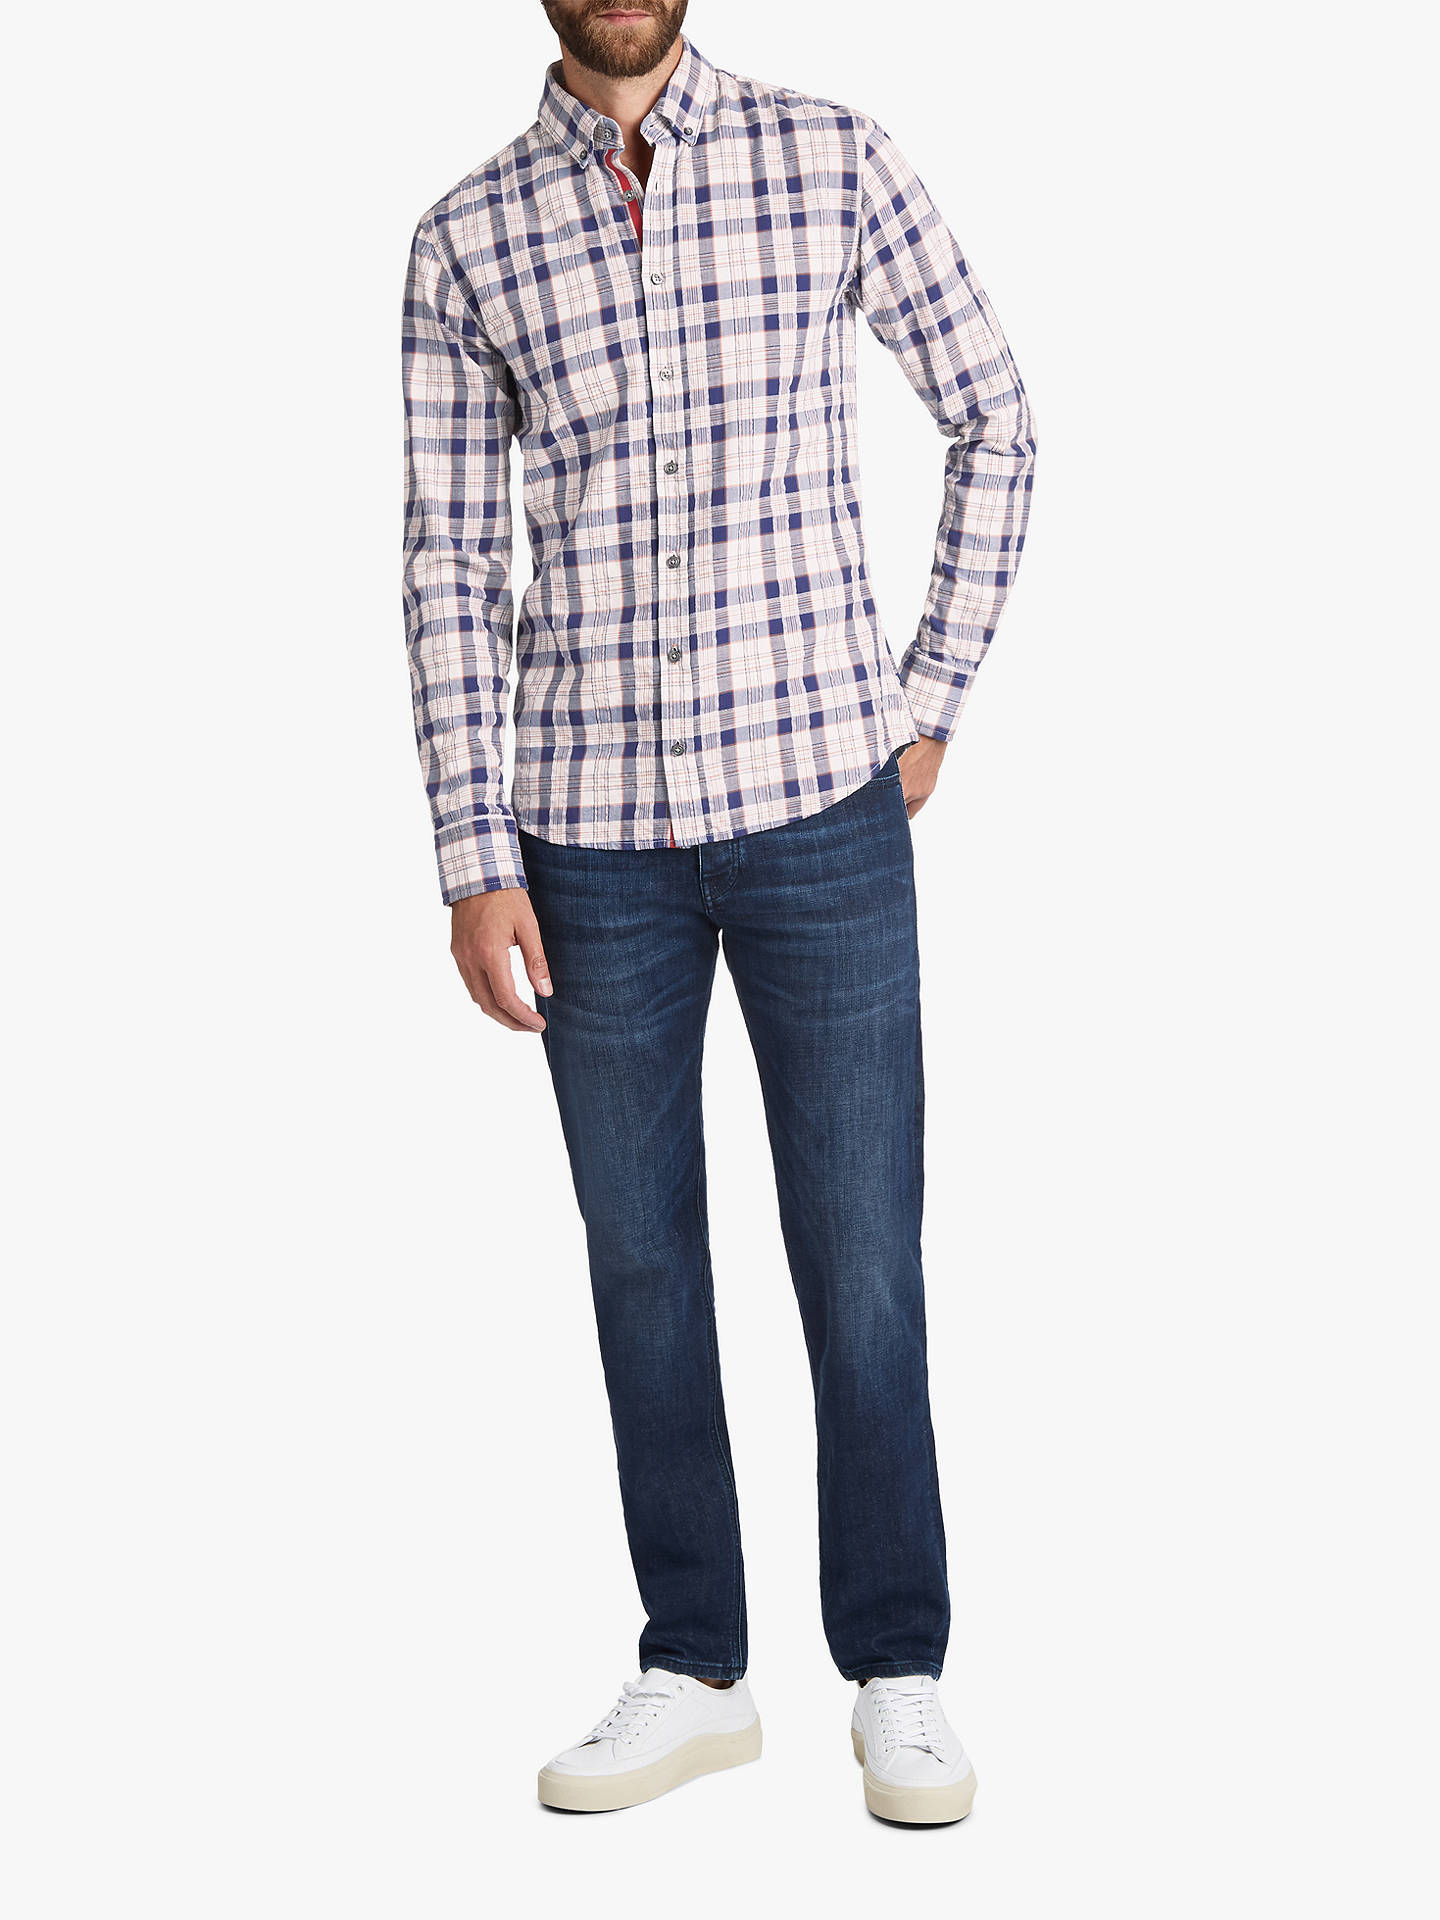 BuyBOSS Mabsoot Cotton Check Shirt, Open Blue, L Online at johnlewis.com